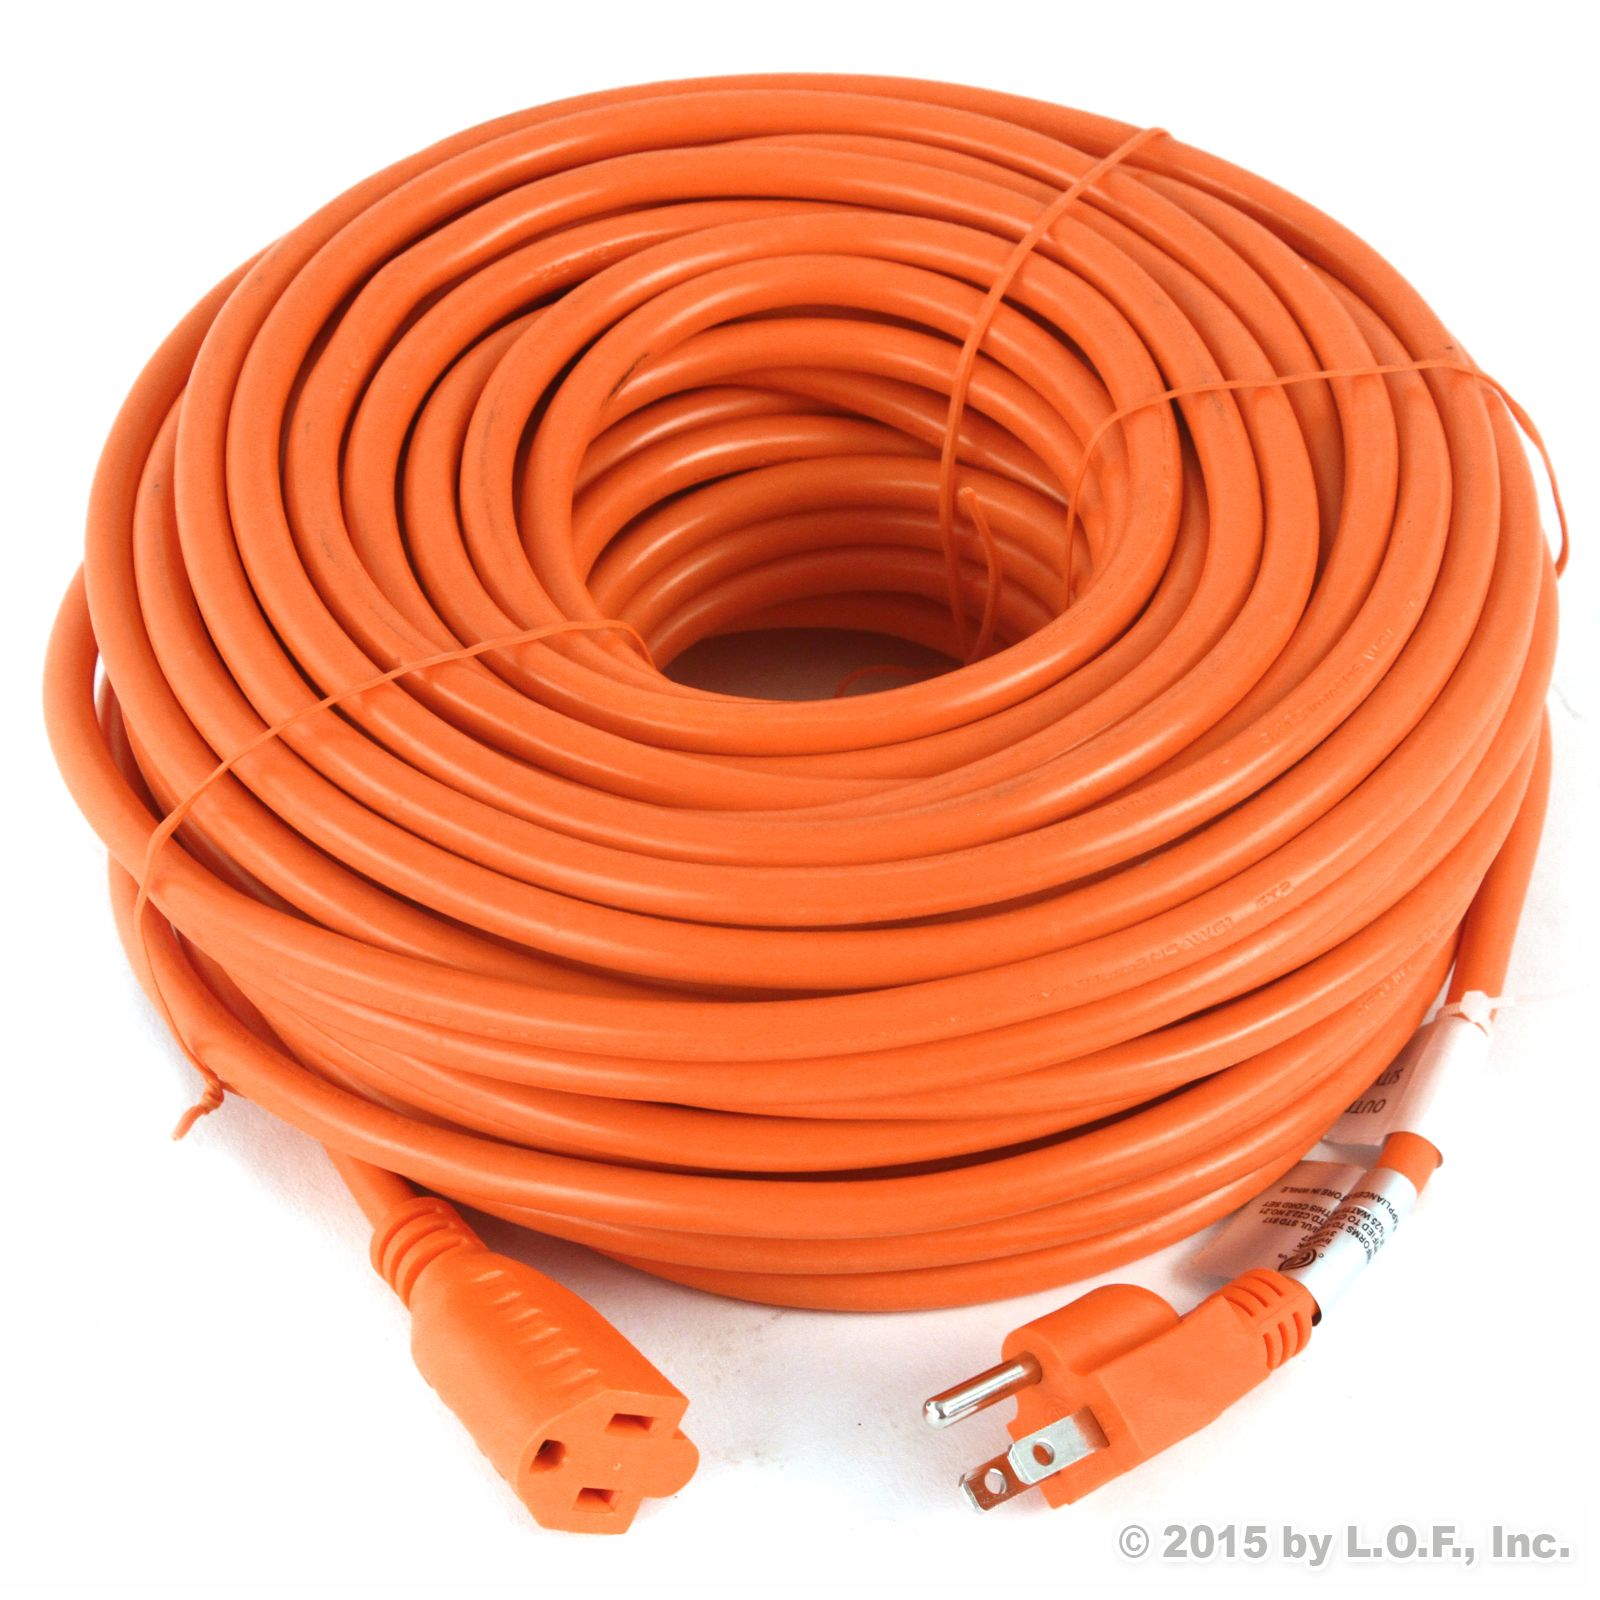 10) Premium Outdoor Extension Cord 125 Volt Cable 100ft 16/3 Indoor Contractor